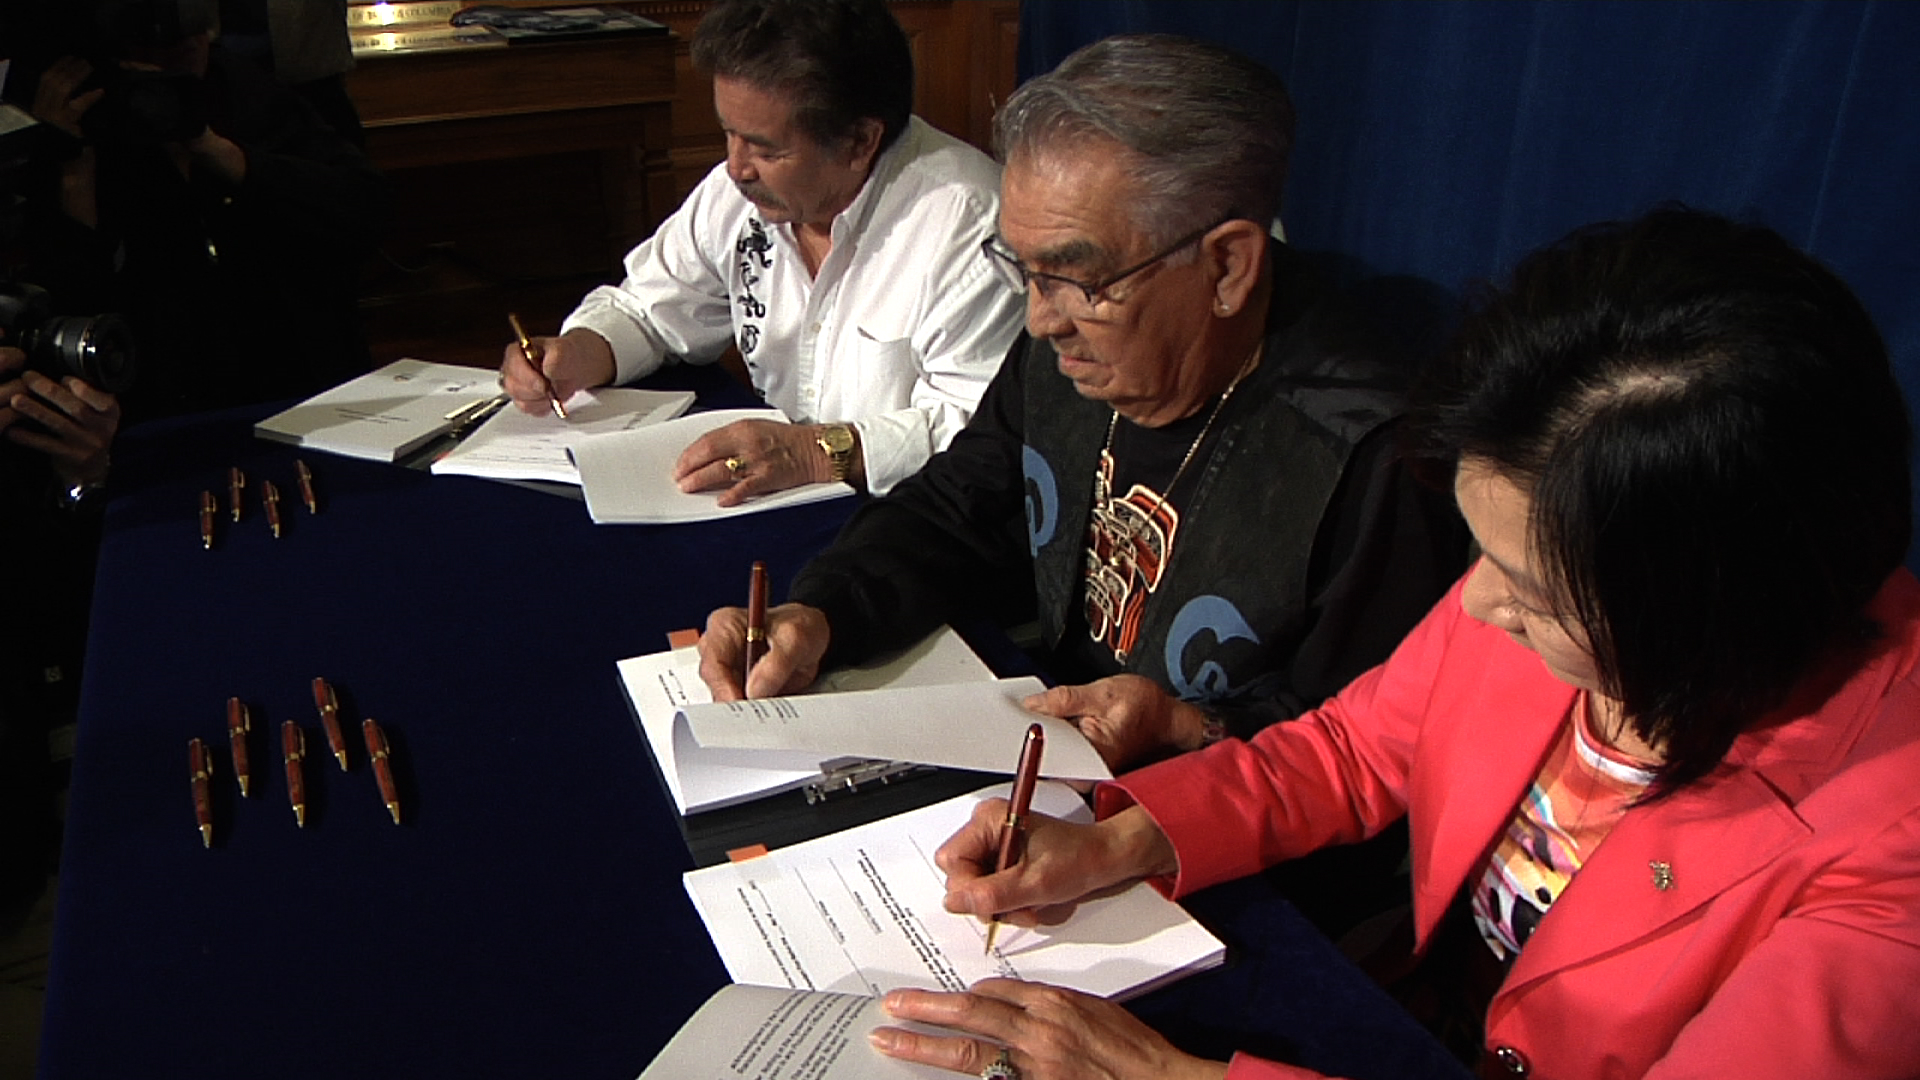 Agreements with the Ditidaht and Pacheedaht First Nations